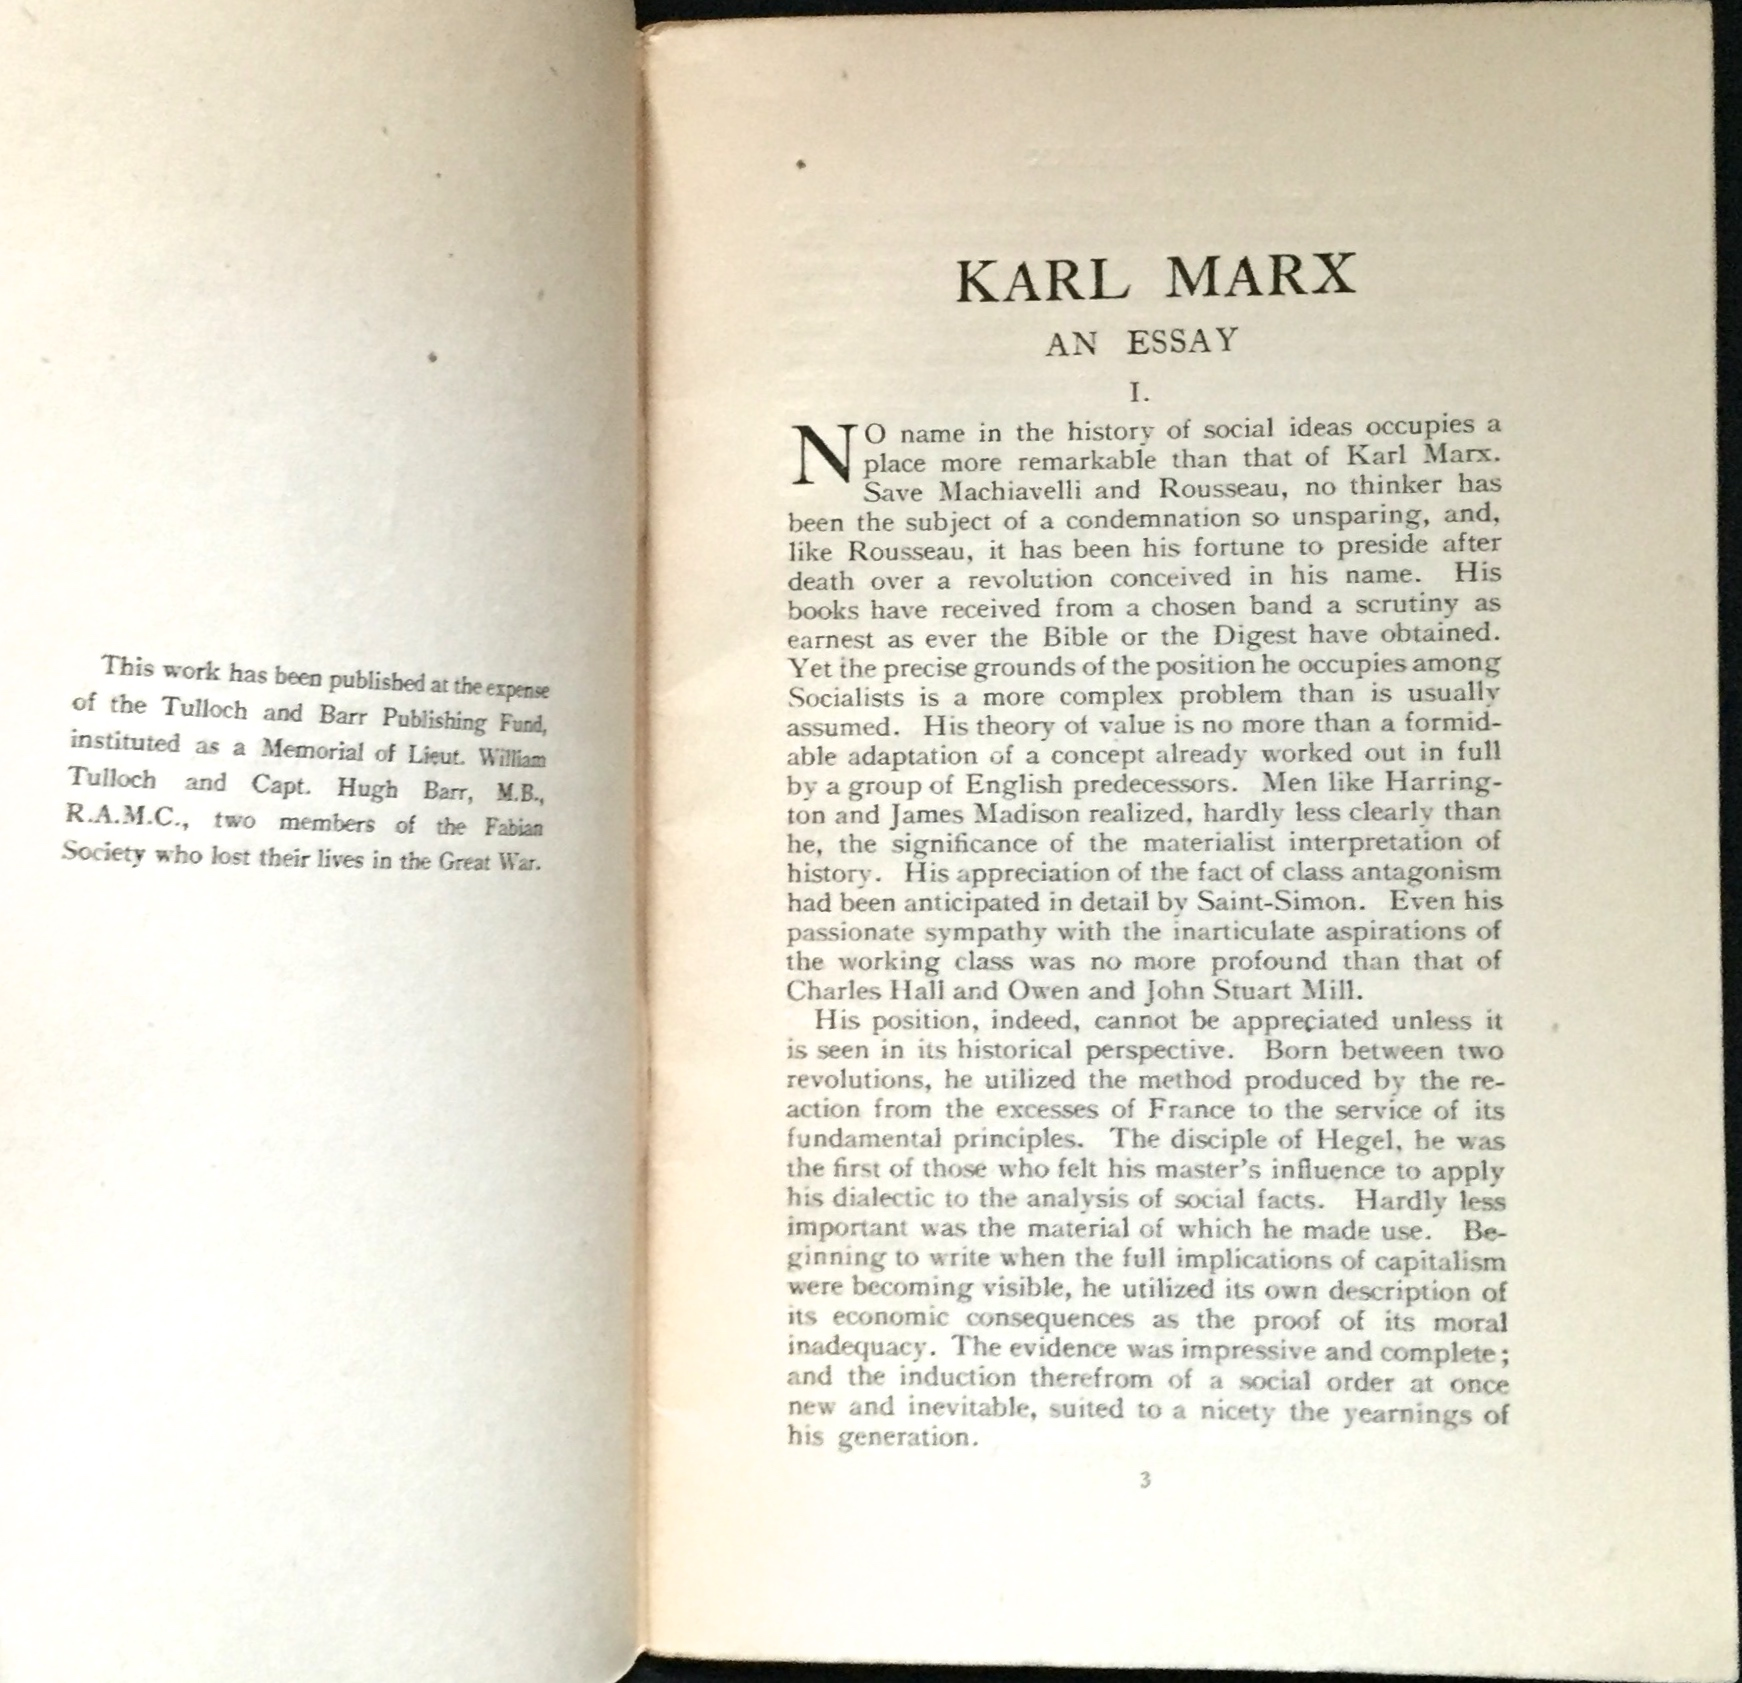 karl marx essays karl marx quotes quotefancy karl marx research  essay on karl marx what did karl marx mean by exploitation in a karl marx essayessay